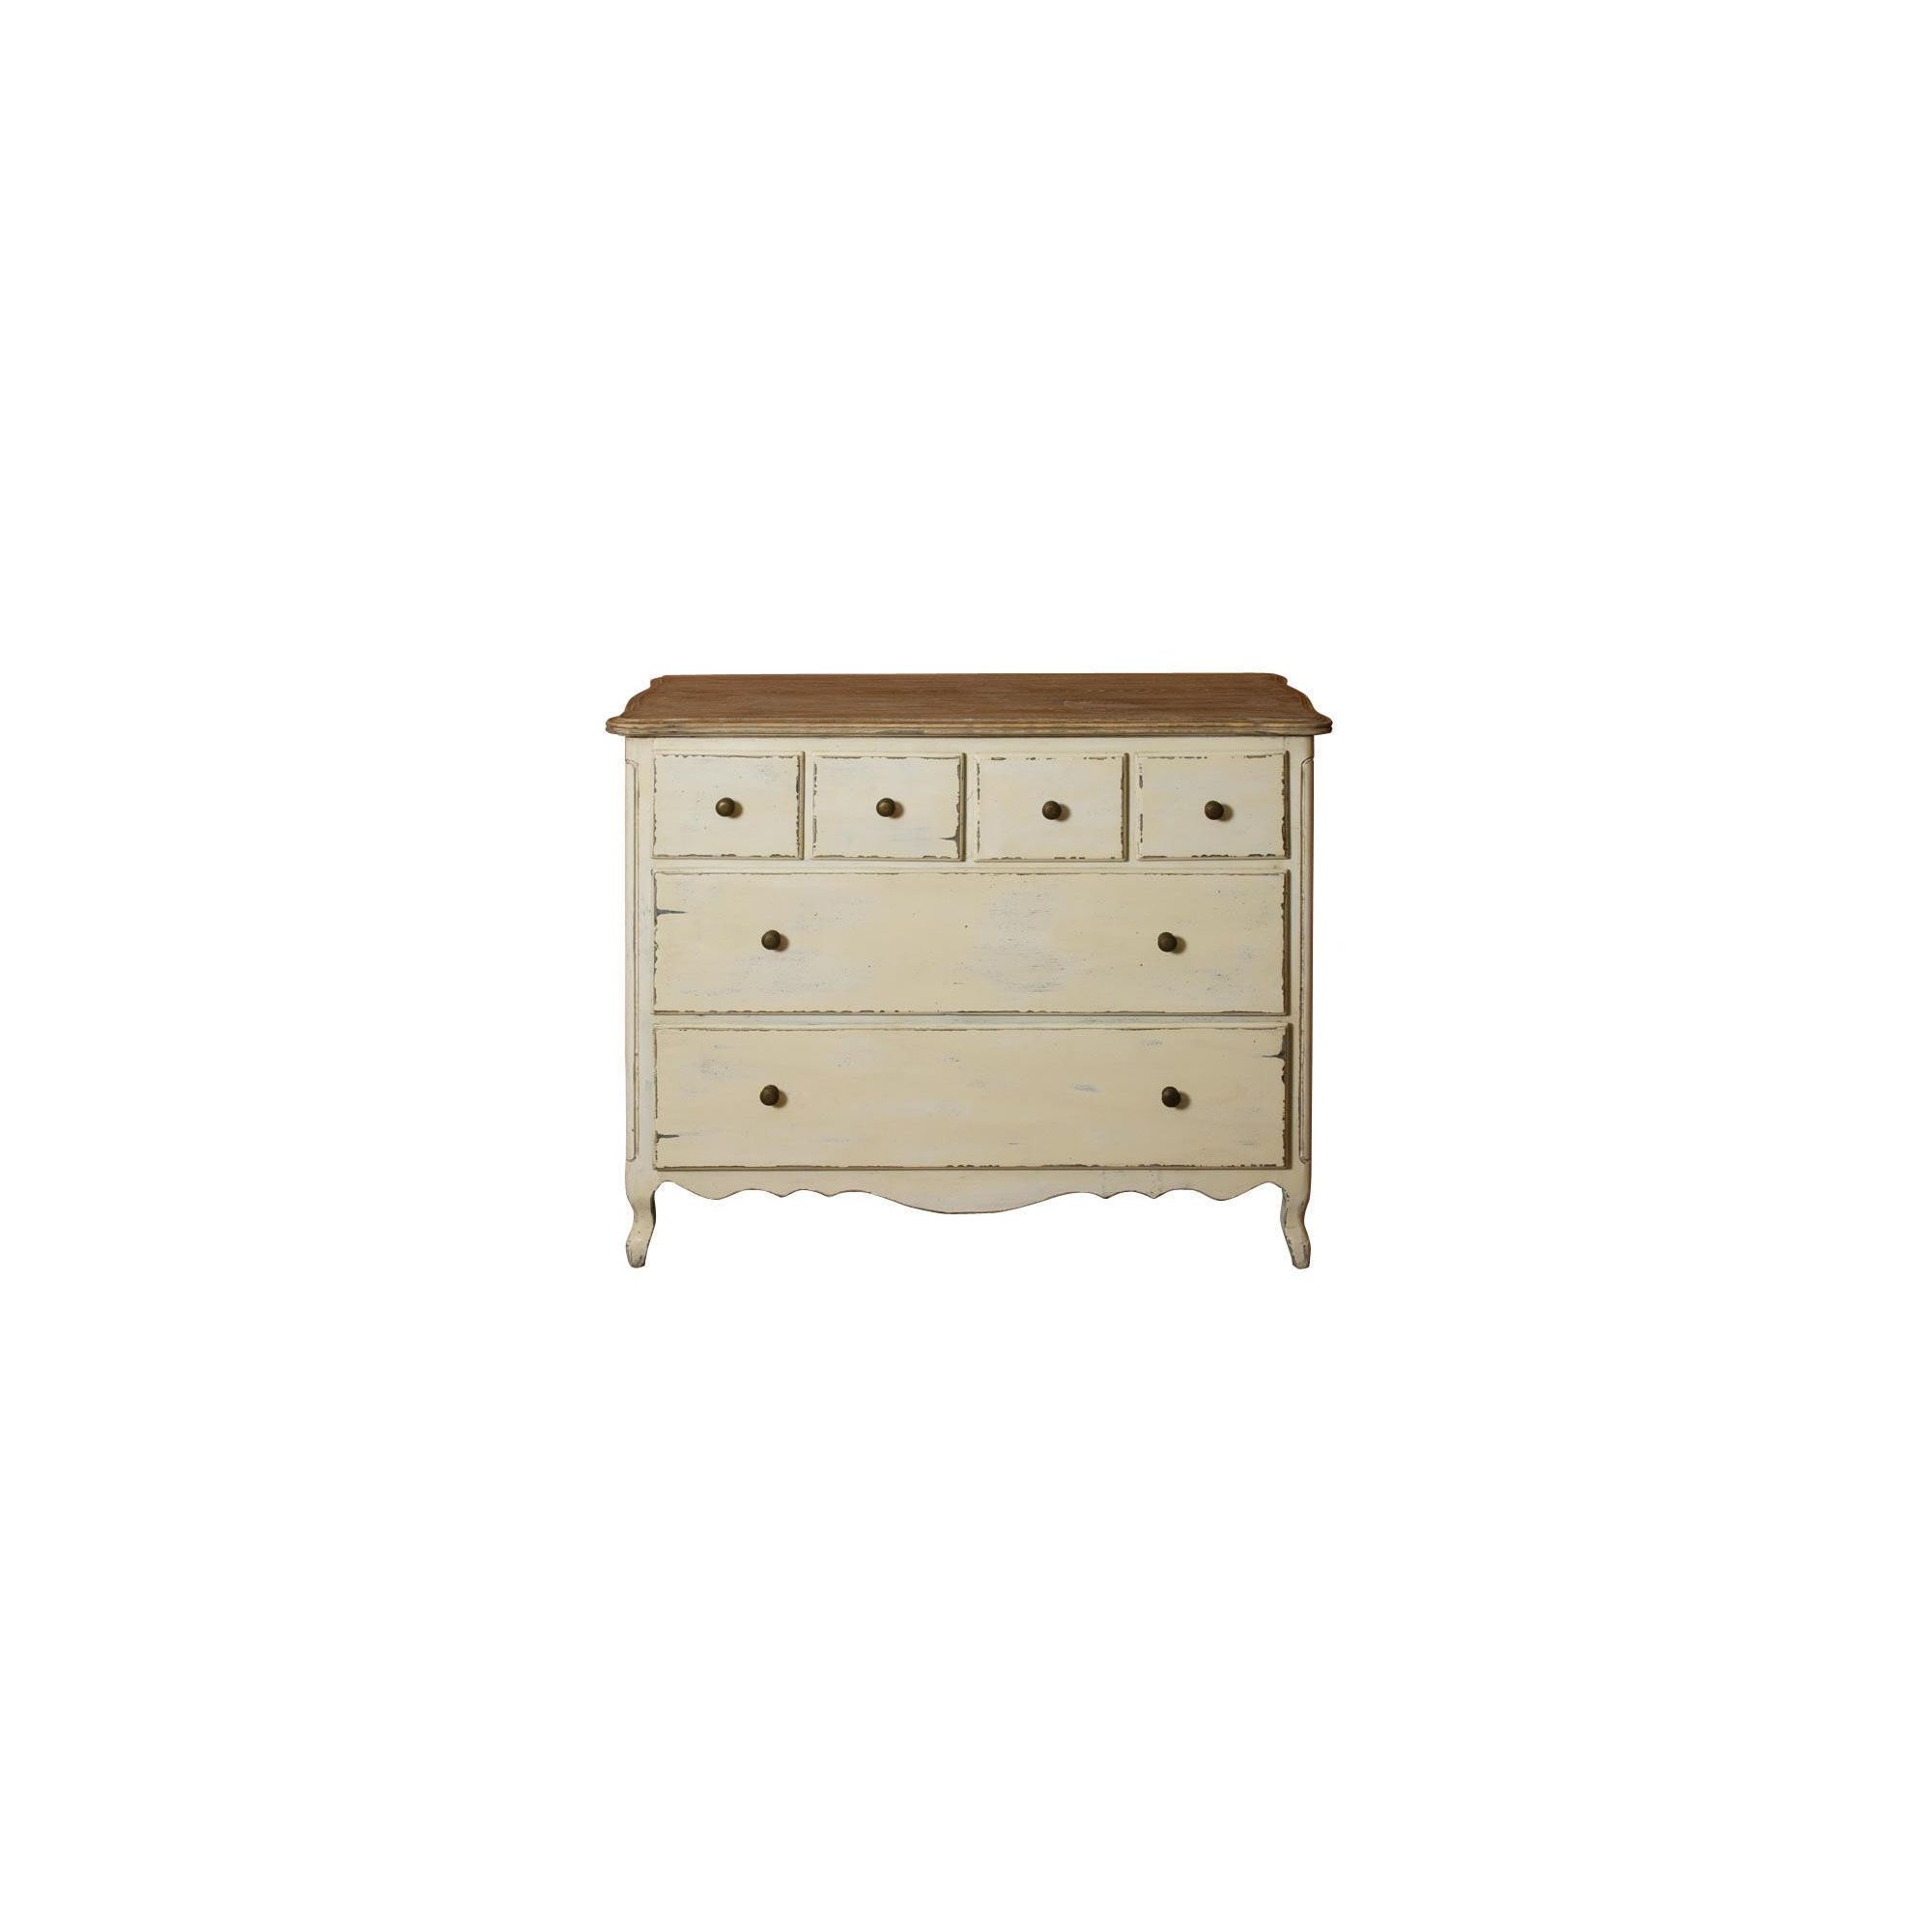 Alterton Furniture 6 Drawer Chest at Tesco Direct